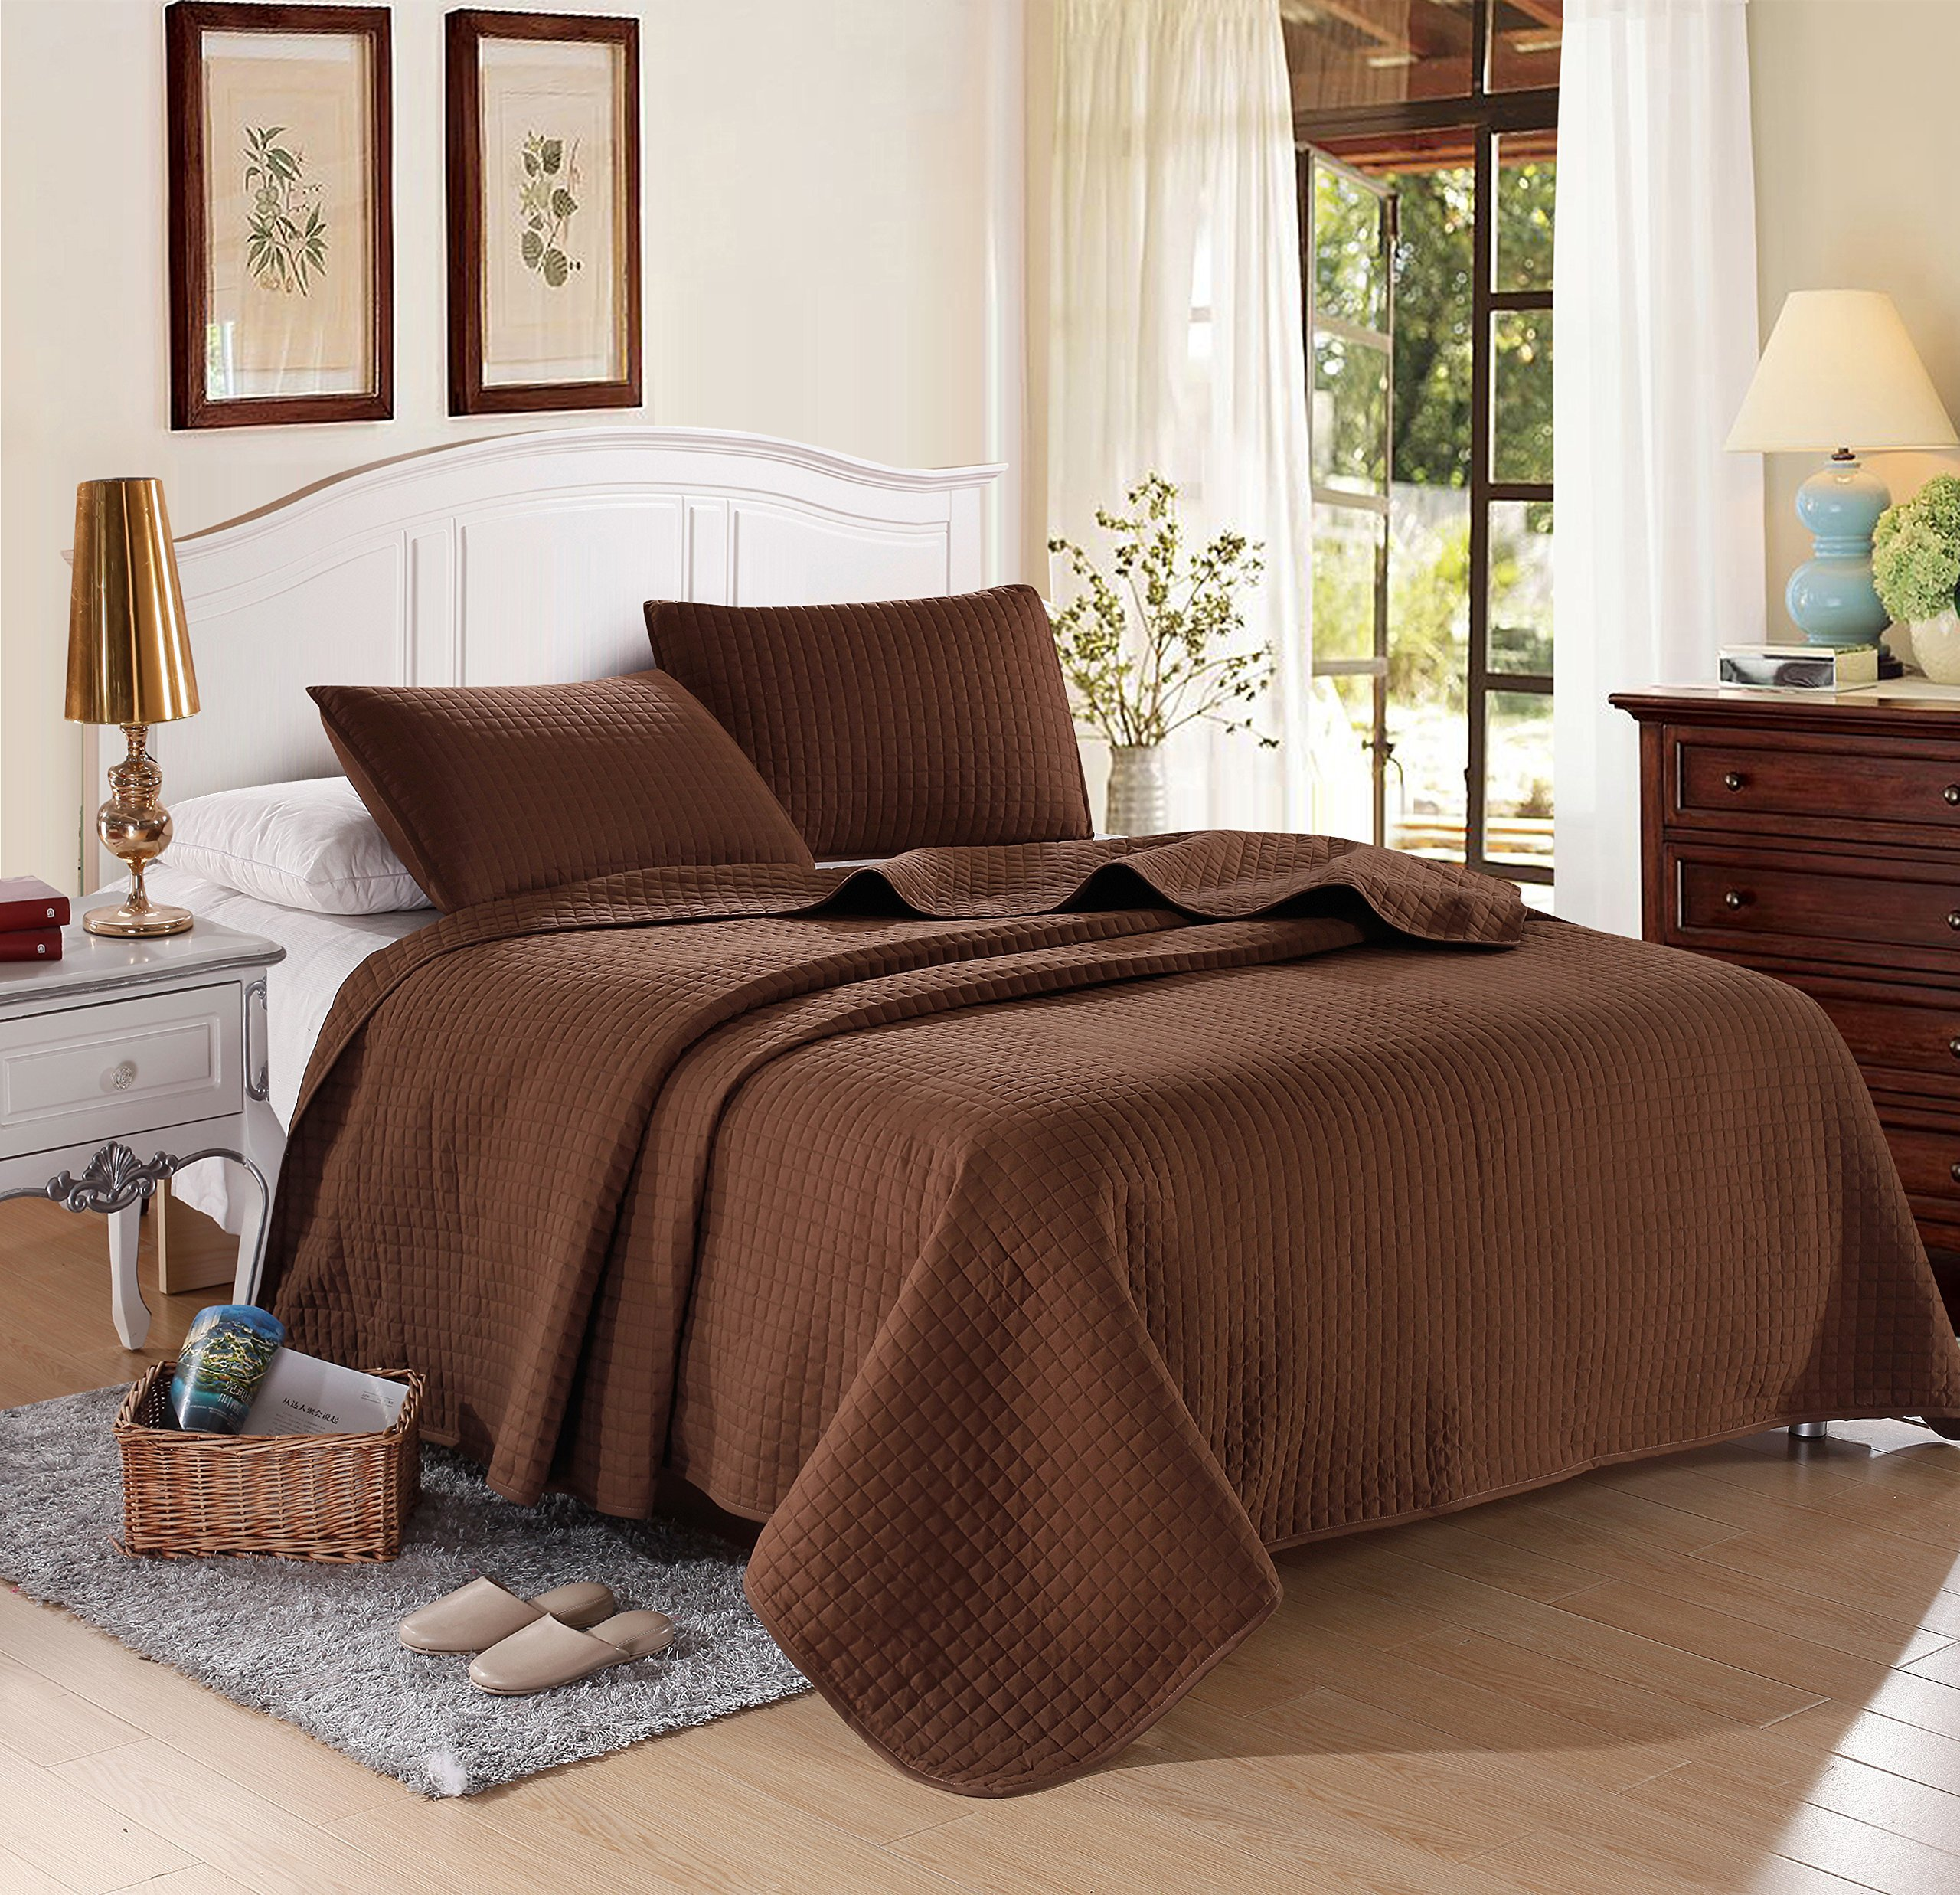 Chocolate Solid Color Quilt 90''L-102''W, 2 Shams 20''L-36''W . Hypoallergenic, Finely Stitched, All Season, Coverlet Bed-cover, Washable Durable.